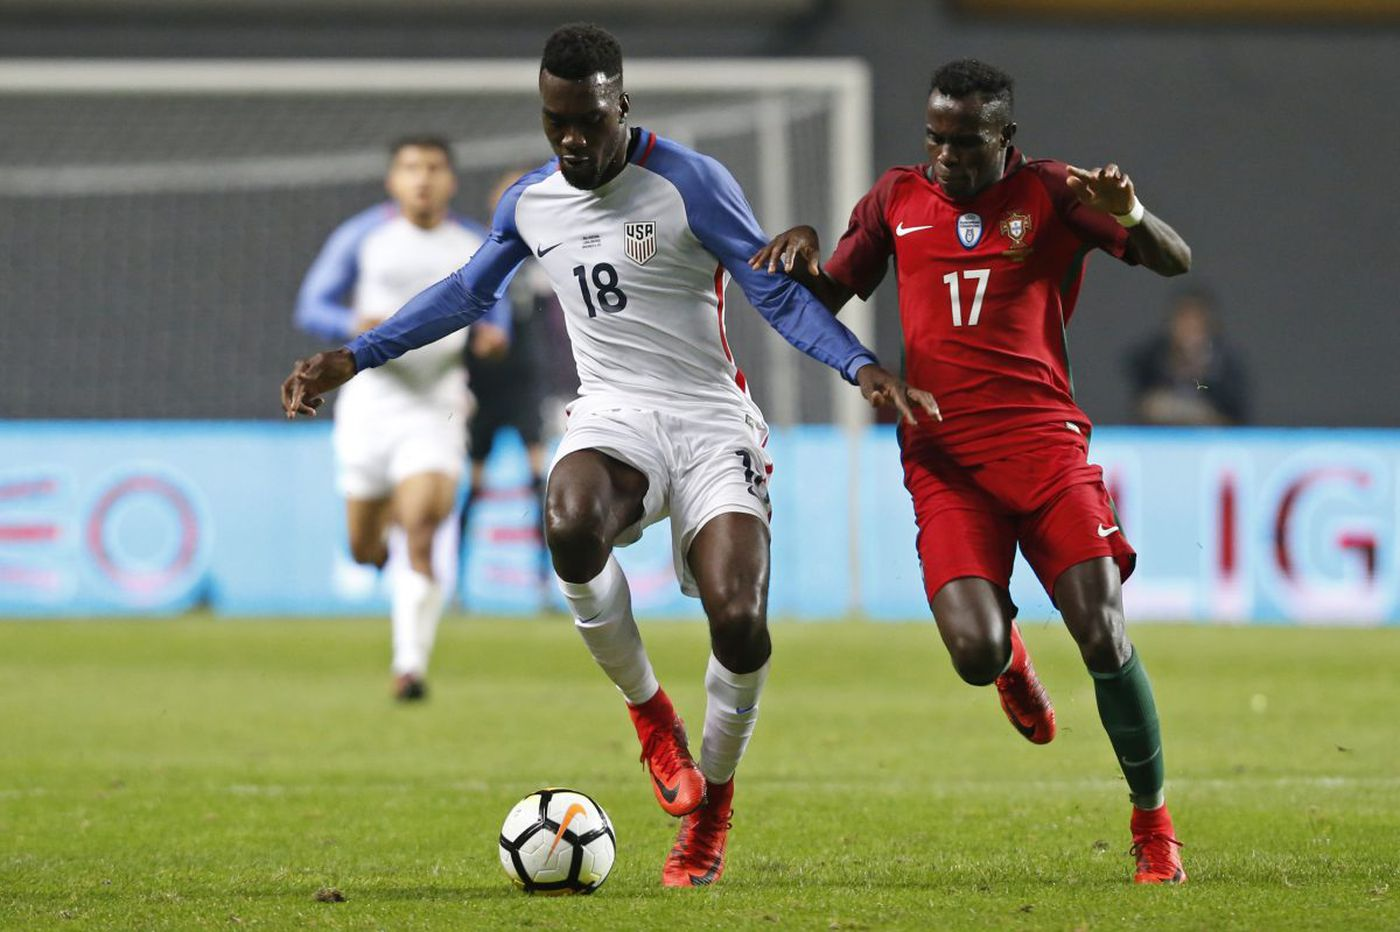 C.J. Sapong headed to U.S. national team January camp; Union set to hire two assistant coaches